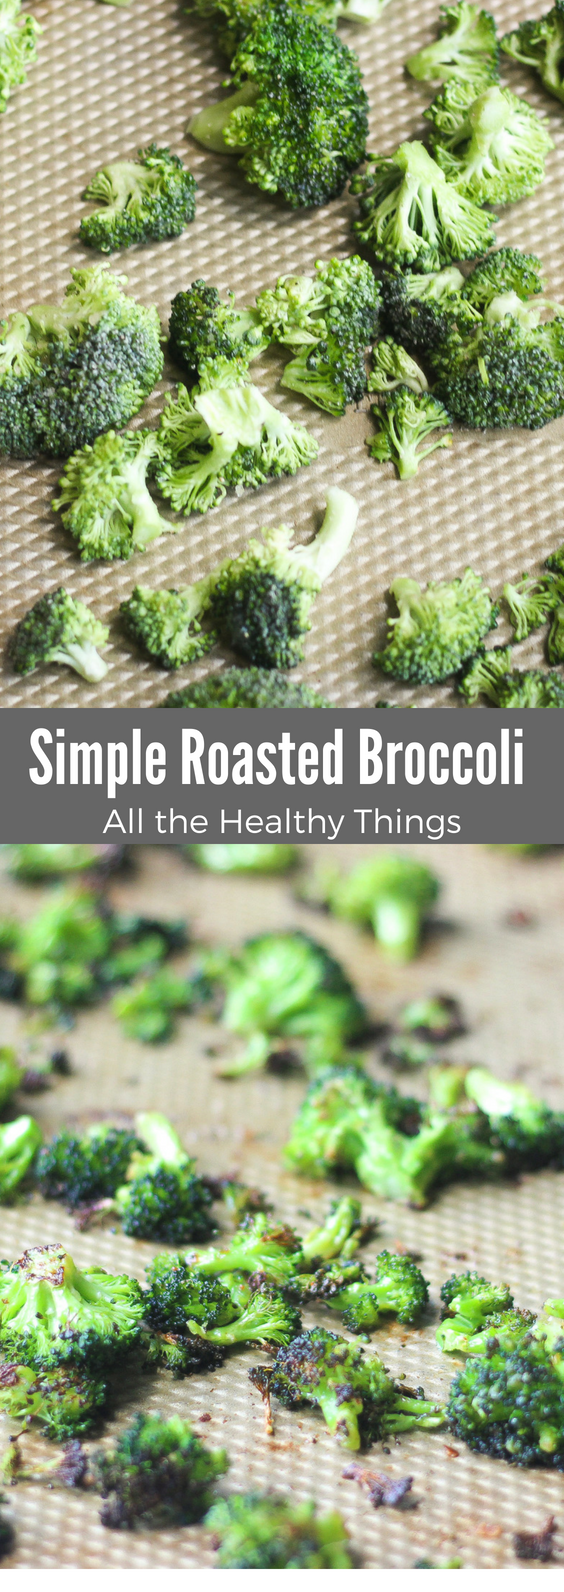 This simple roasted broccoli is an easy side dish that can be paired with just about any meal. If you need a tasty new way to incorporate more veggies in your diet, try this!